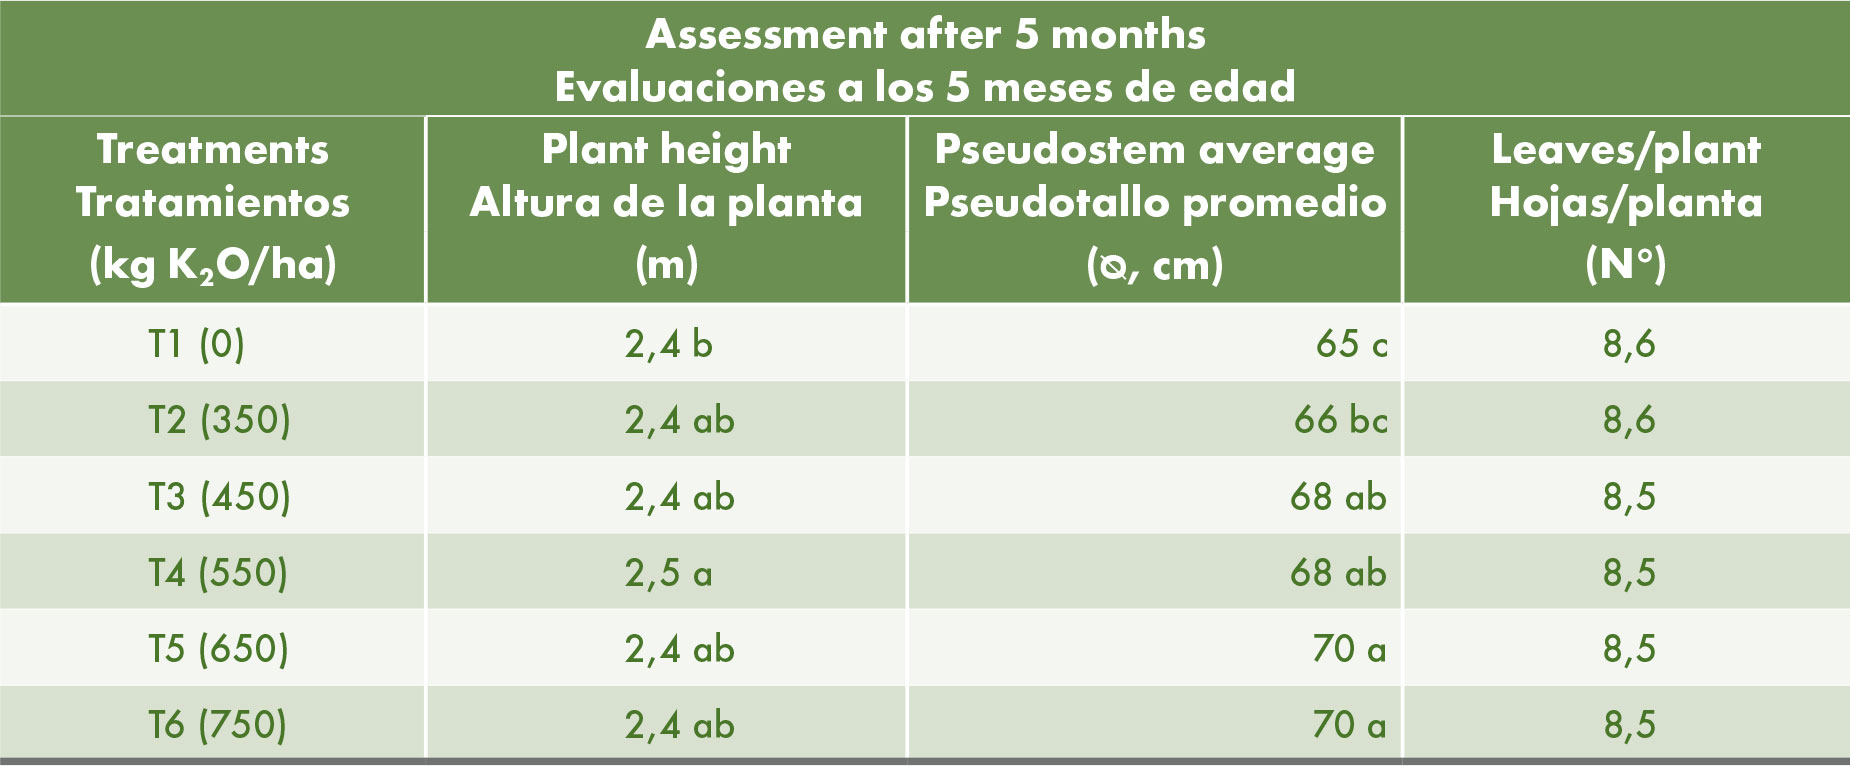 Height of the plants, diameter of pseudostem and number of leaves on 7 month old plants, 5 months after the start of the trial. Means followed by the same letters are not significantly different (Duncan, 95%).     Figure 1. The trial site at Tapachula. Qrop®KS (prilled Potassium Nitrate) is positioned as a source of N and K in fertiliser blends.  Effect of higher potassium rates on the yield and fruit quality  A number of parameters on the fruiting bunch were measured (Table 3). The size of a bunch is determined by the number of hands, number of fingers (individual banana fruits) per hand and the length of each fruit. All treatments resulted in similar finger length, within the range of good quality fruits. The number of hands per bunch and number of fruits per hand increased with higher potassium rates, with a statistically significant higher yield on those plants that had received the highest dose of potassium (750 kg K<sub>2</sub>O/ha/yr). This increase is related to the nutritional status (particularly of potassium) in the early stages of development. The average weight per bunch also increased with increasing potassium rates and differed significantly from the control at the highest rate.     Figure 2. Application of the nutrients as granular fertilisers at the start of the trial.   Table 3. Average length of fingers, number of hands and number of fingers per bunch and average weight of the bunch. Means followed by the same letters are not significantly different (Duncan, 95%).      The yield in ton per hectare (Table 4), showed an increase of 10% - 39% compared to the control. This may not be attributed solely to the increase in potassium, because of the substitution of 50% of the K<sub>2</sub>O withQrop®KS (prilled Potassium Nitrate). One of the advantages of potassium nitrate is that it consists of 100% macronutrients. The possible benefits of the other component (NO<sub>3</sub>) should be considered. In the treatment with the best results (750 kg K<sub>2</s